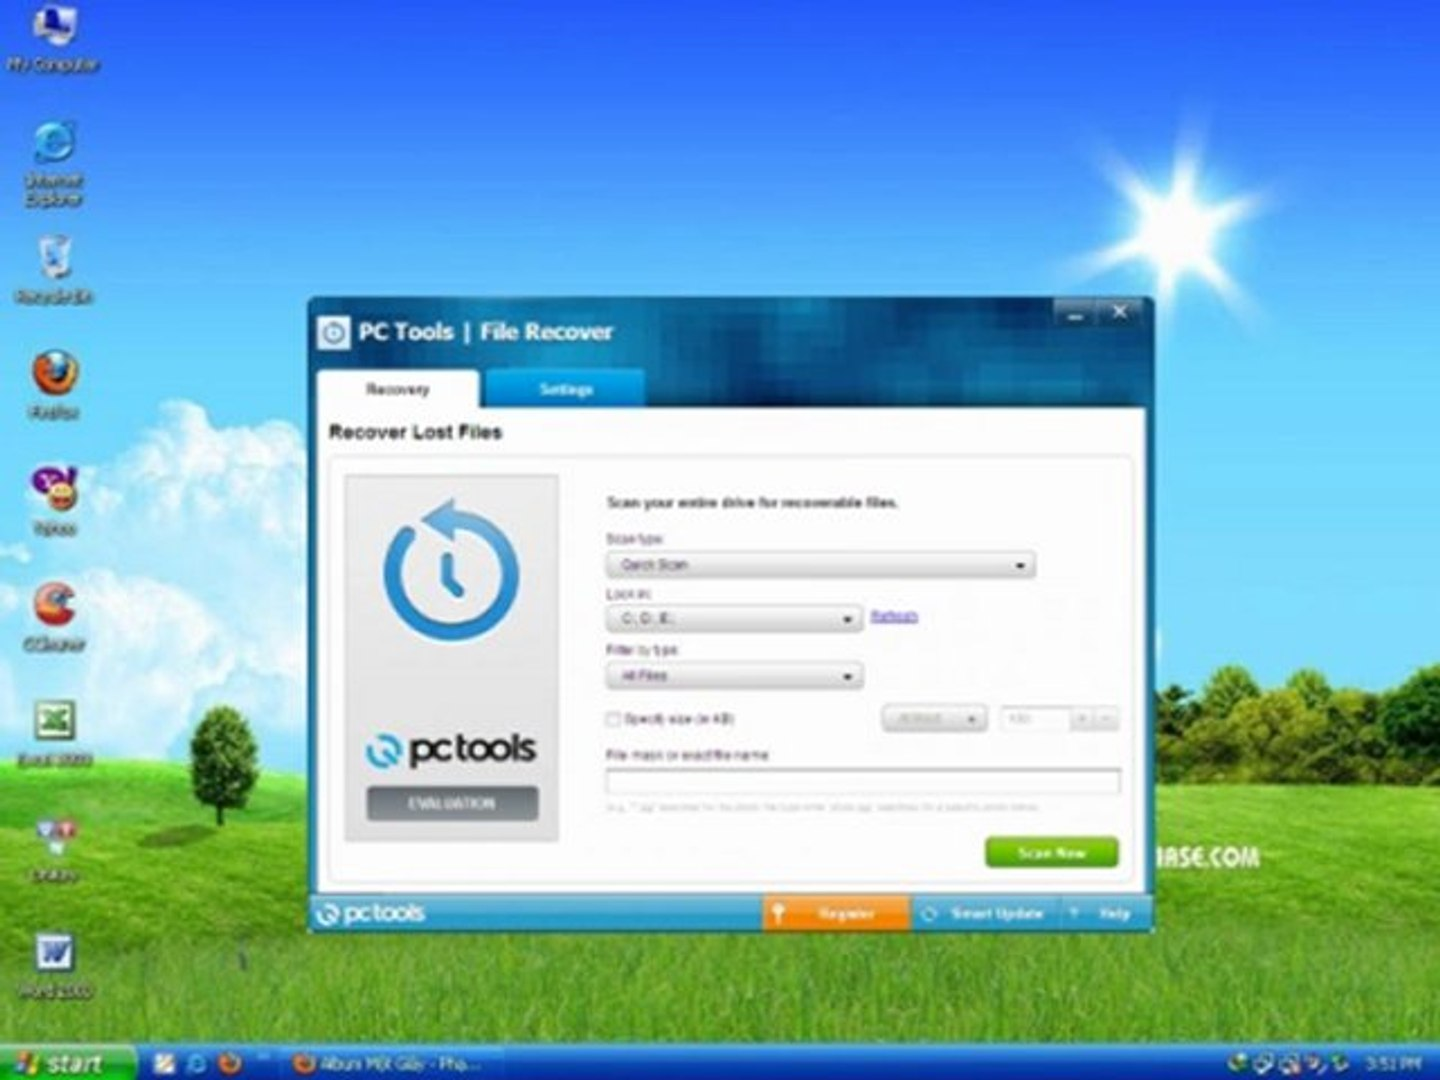 RECOVER 9.0.1.221 FILE PC TOOLS TÉLÉCHARGER